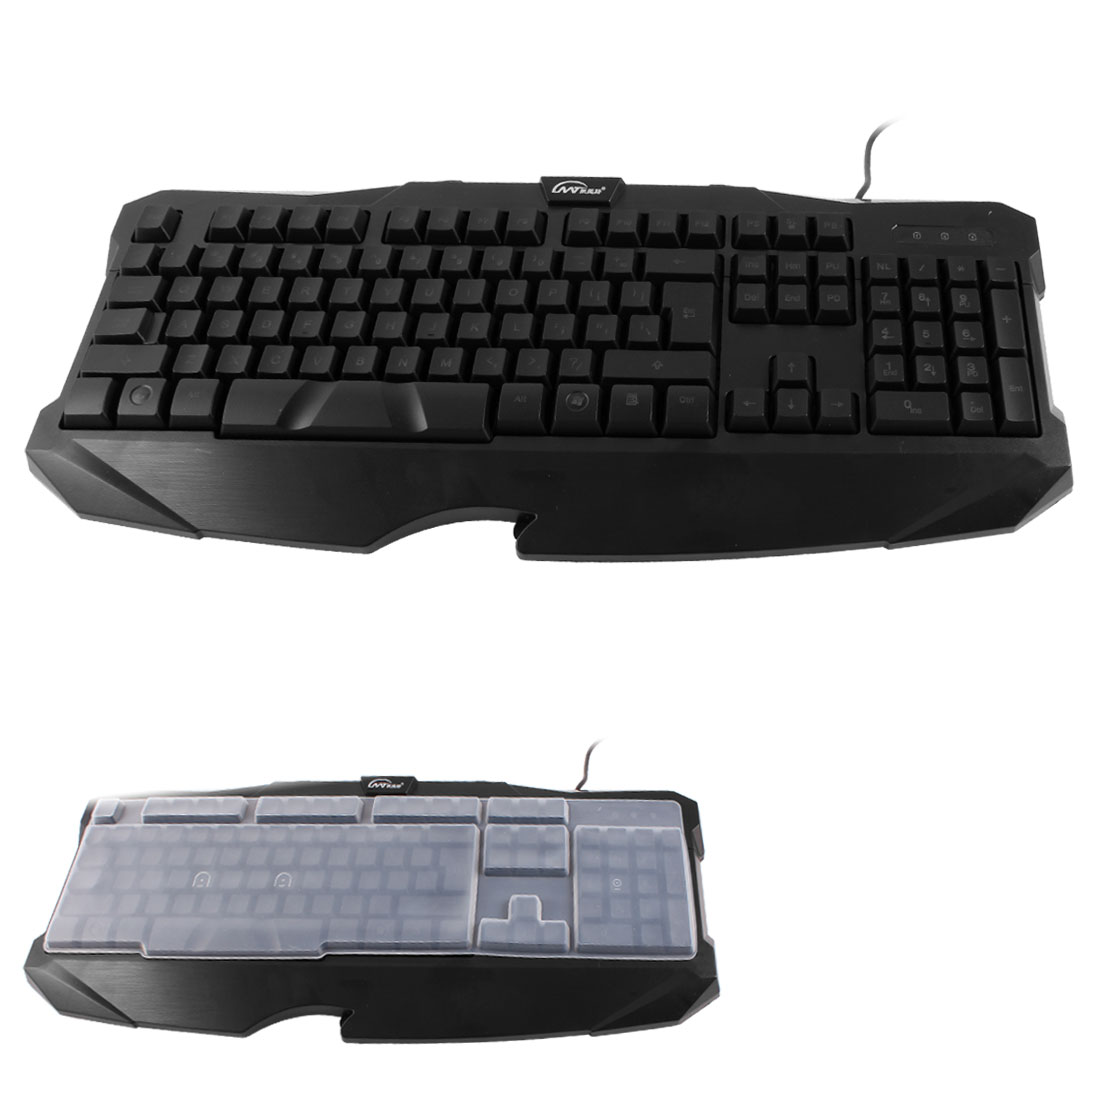 Blue LED Light Multimedia Wired USB PC Win8 Backlit Backlight Keyboard Black